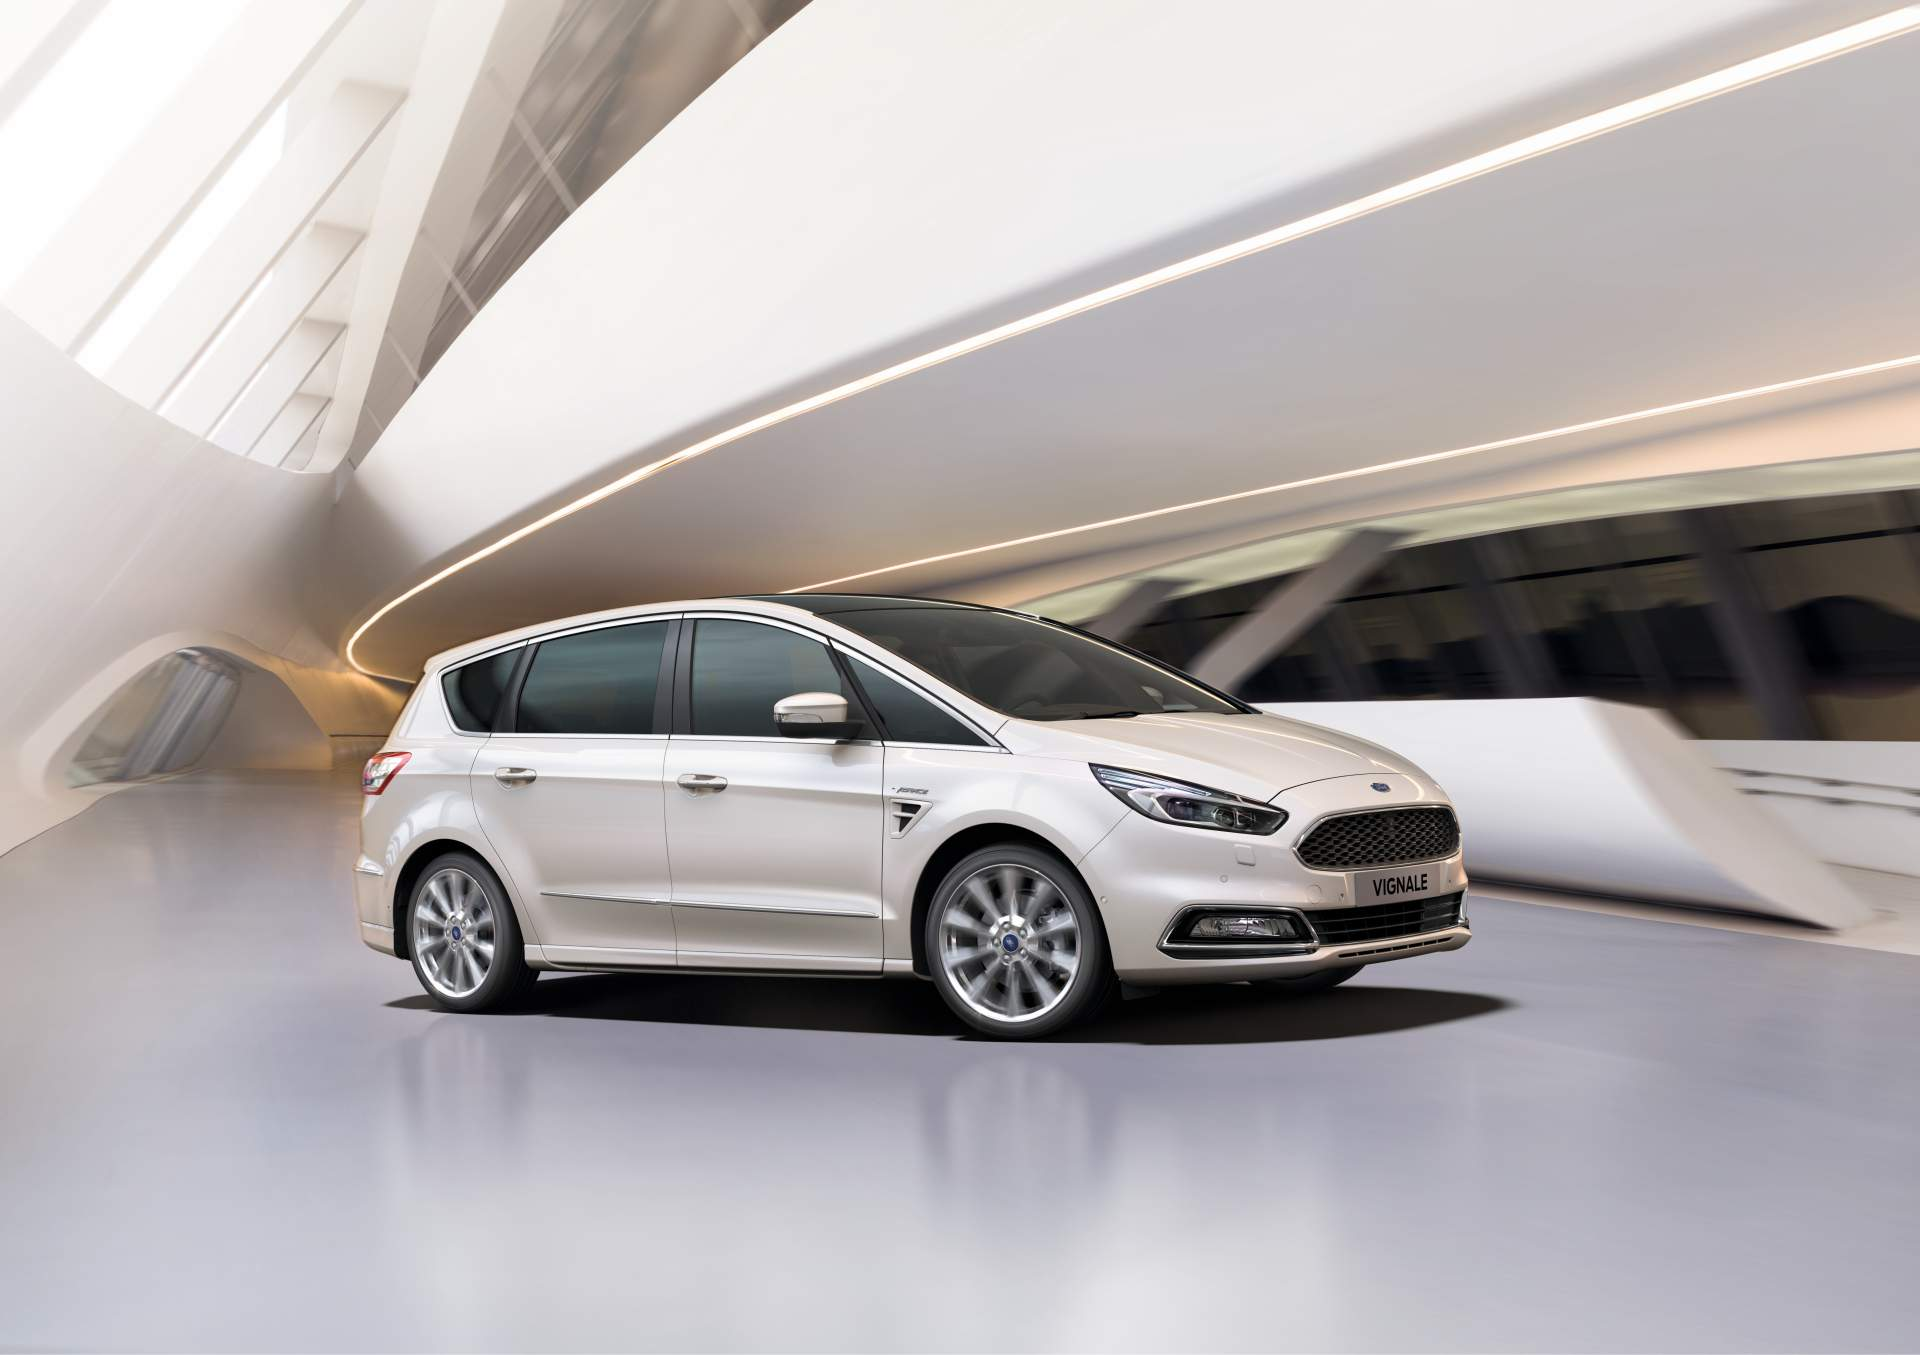 2014 - [Ford] S-Max II - Page 7 Ford-updates-s-max-galaxy-for-2019_10